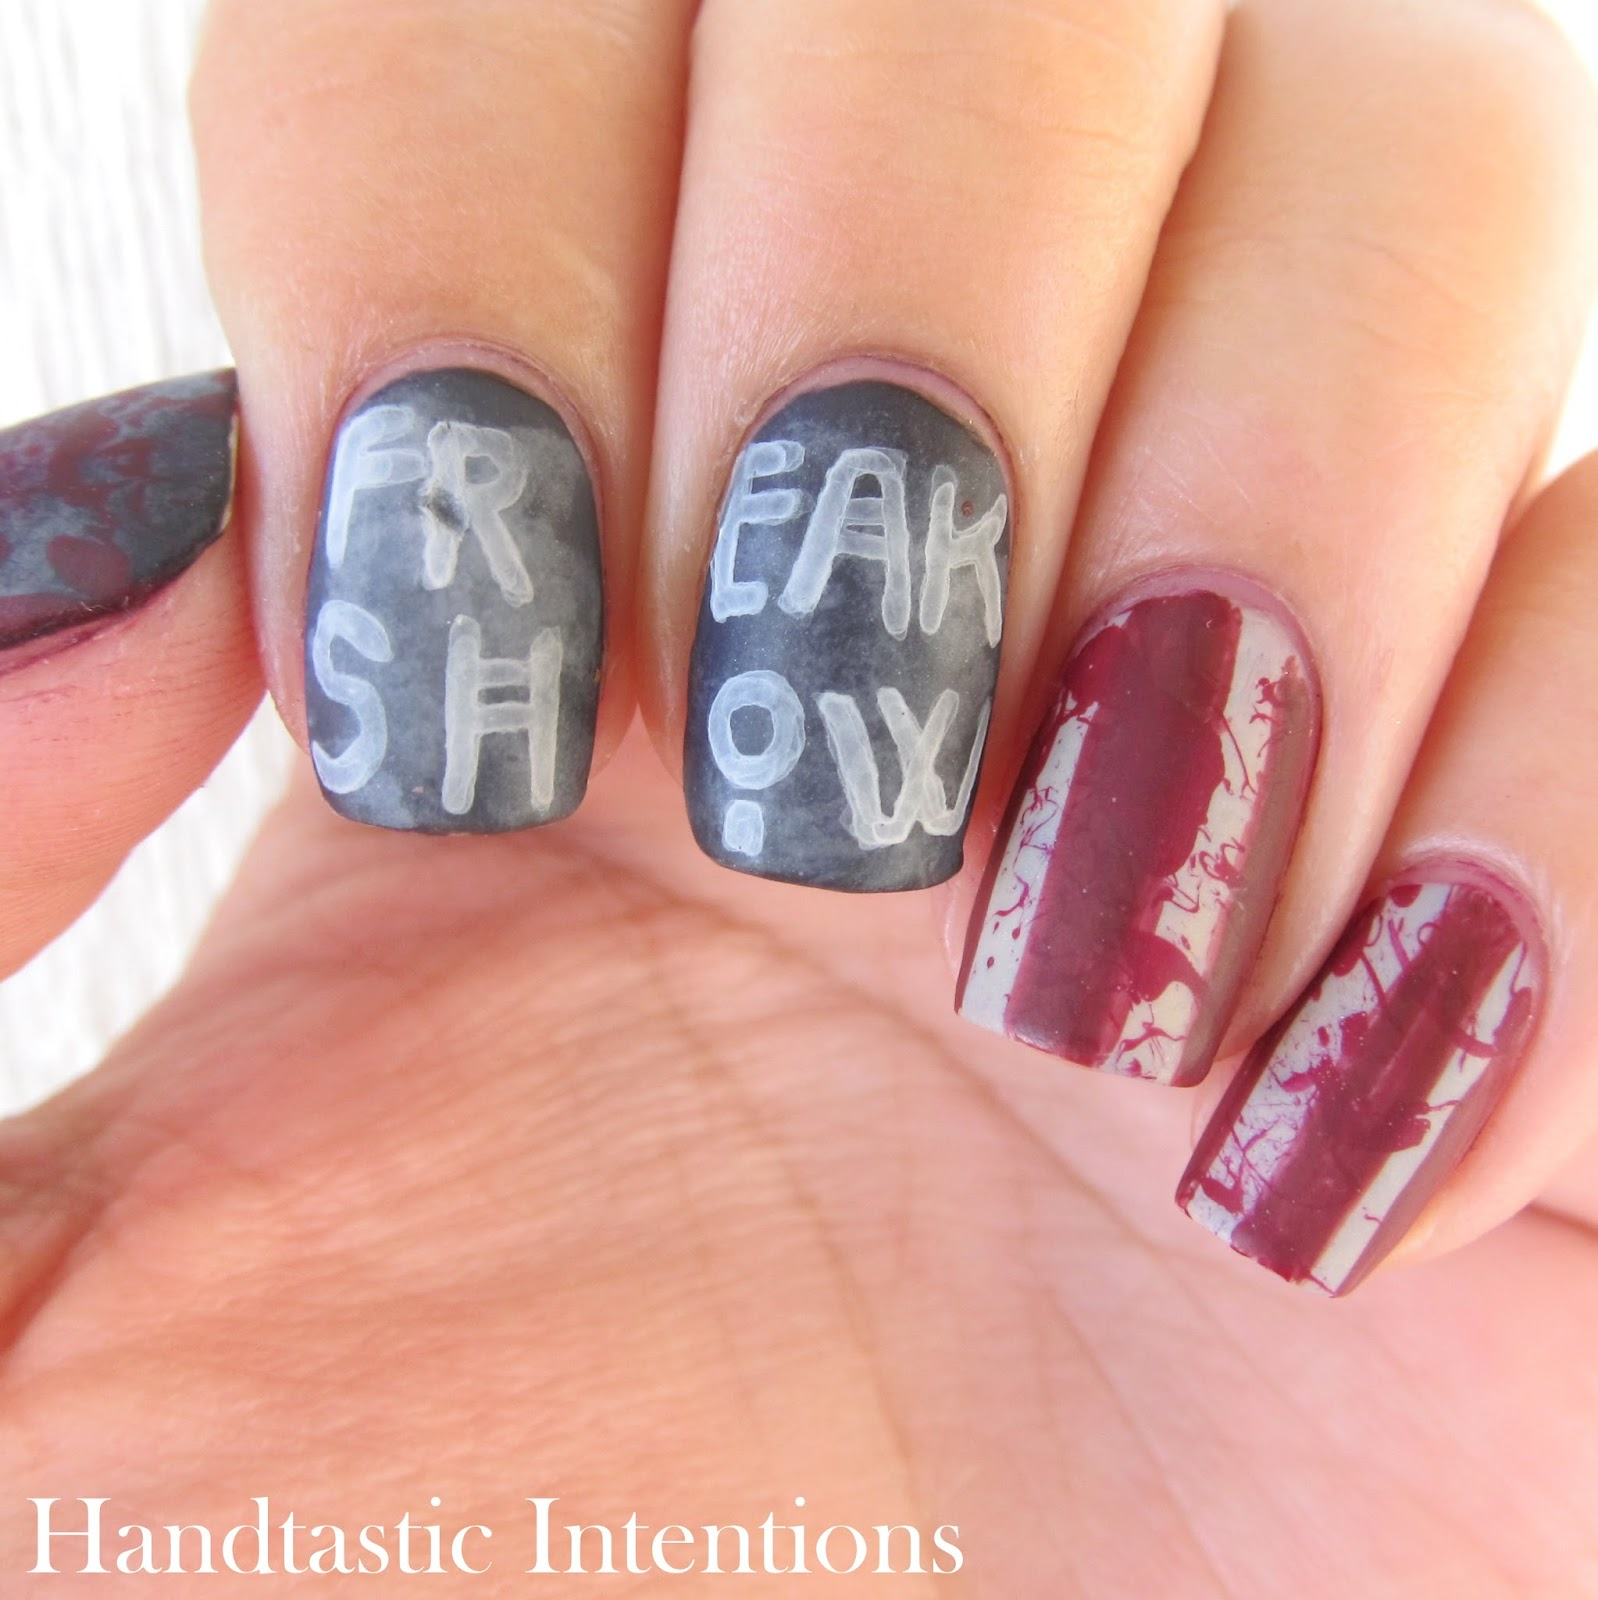 Handtastic Intentions American Horror Story Freak Show Nail Art